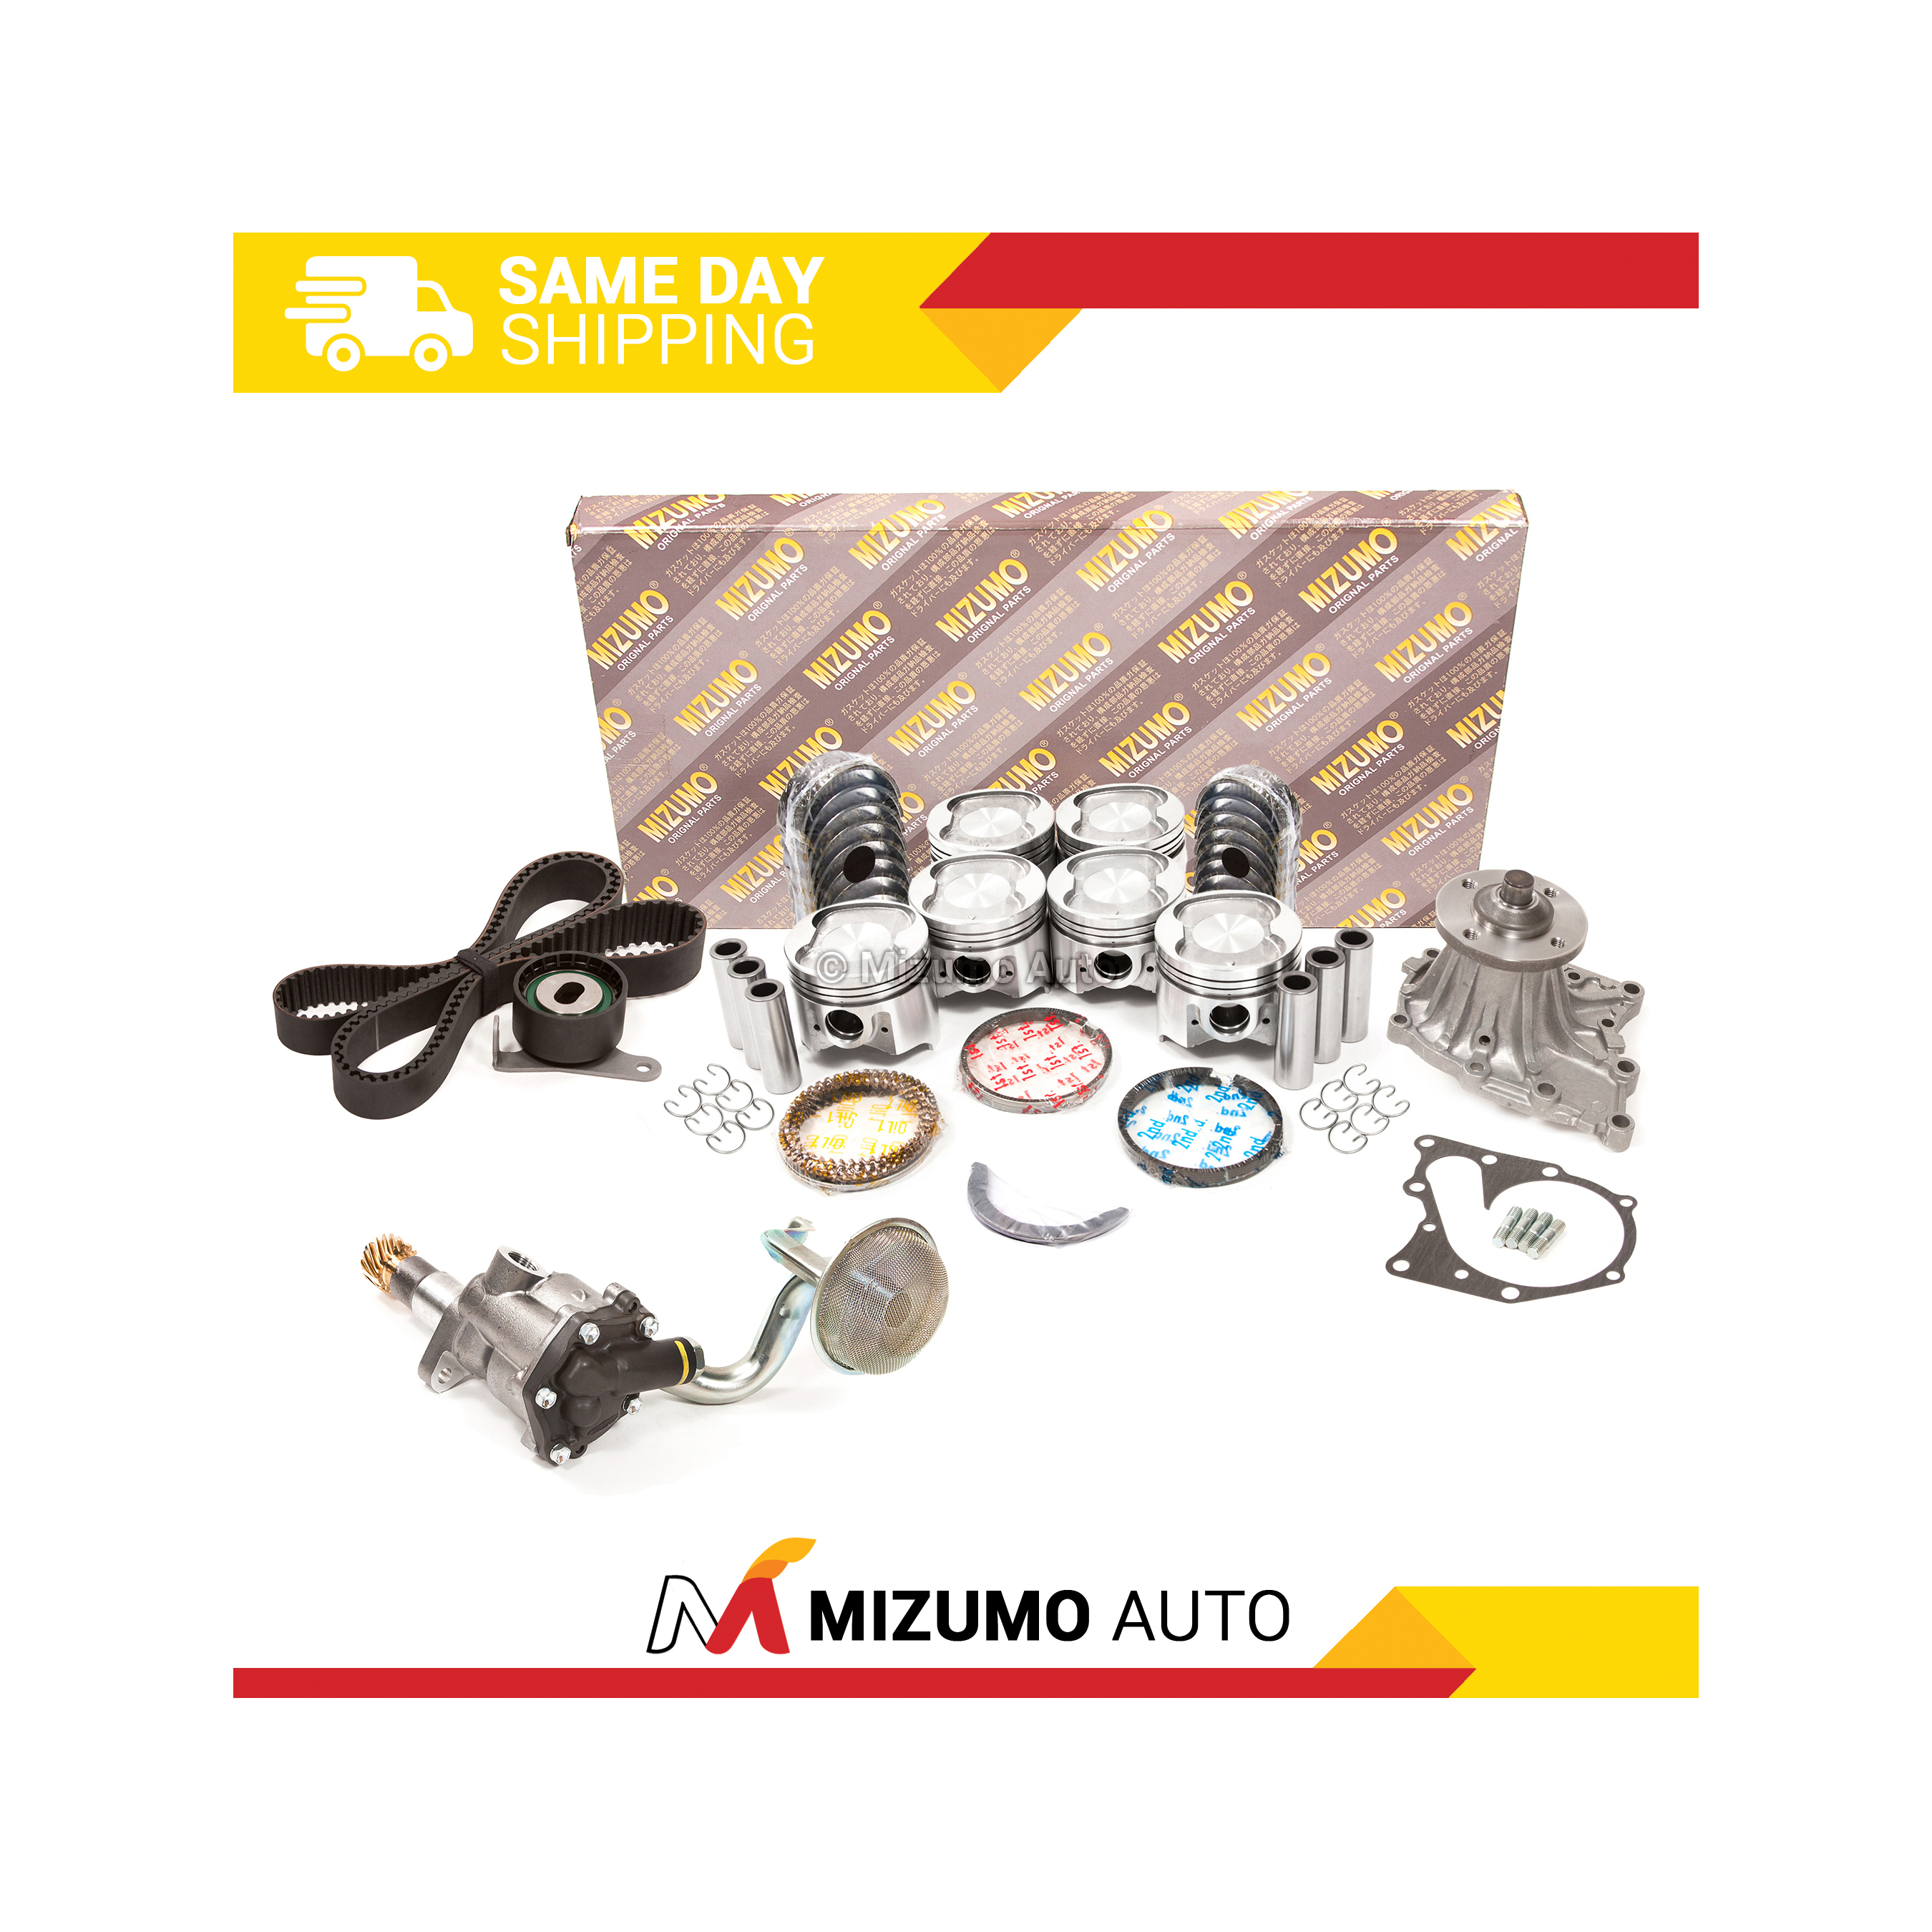 Details about Engine Rebuild Kit Fit 86-92 Toyota Supra 3 0L DOHC 7MGE